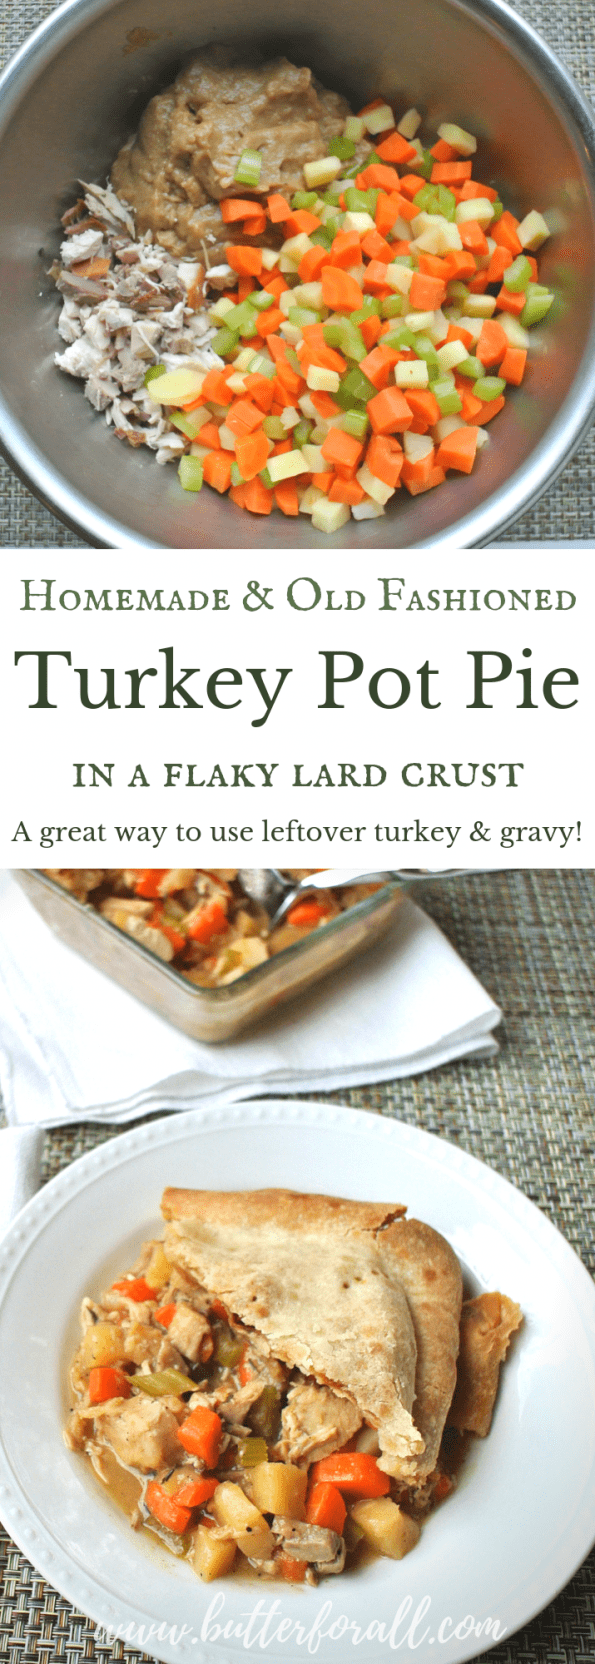 This homemade turkey pot pie is the perfect way to use those amazing Thanksgiving leftovers!